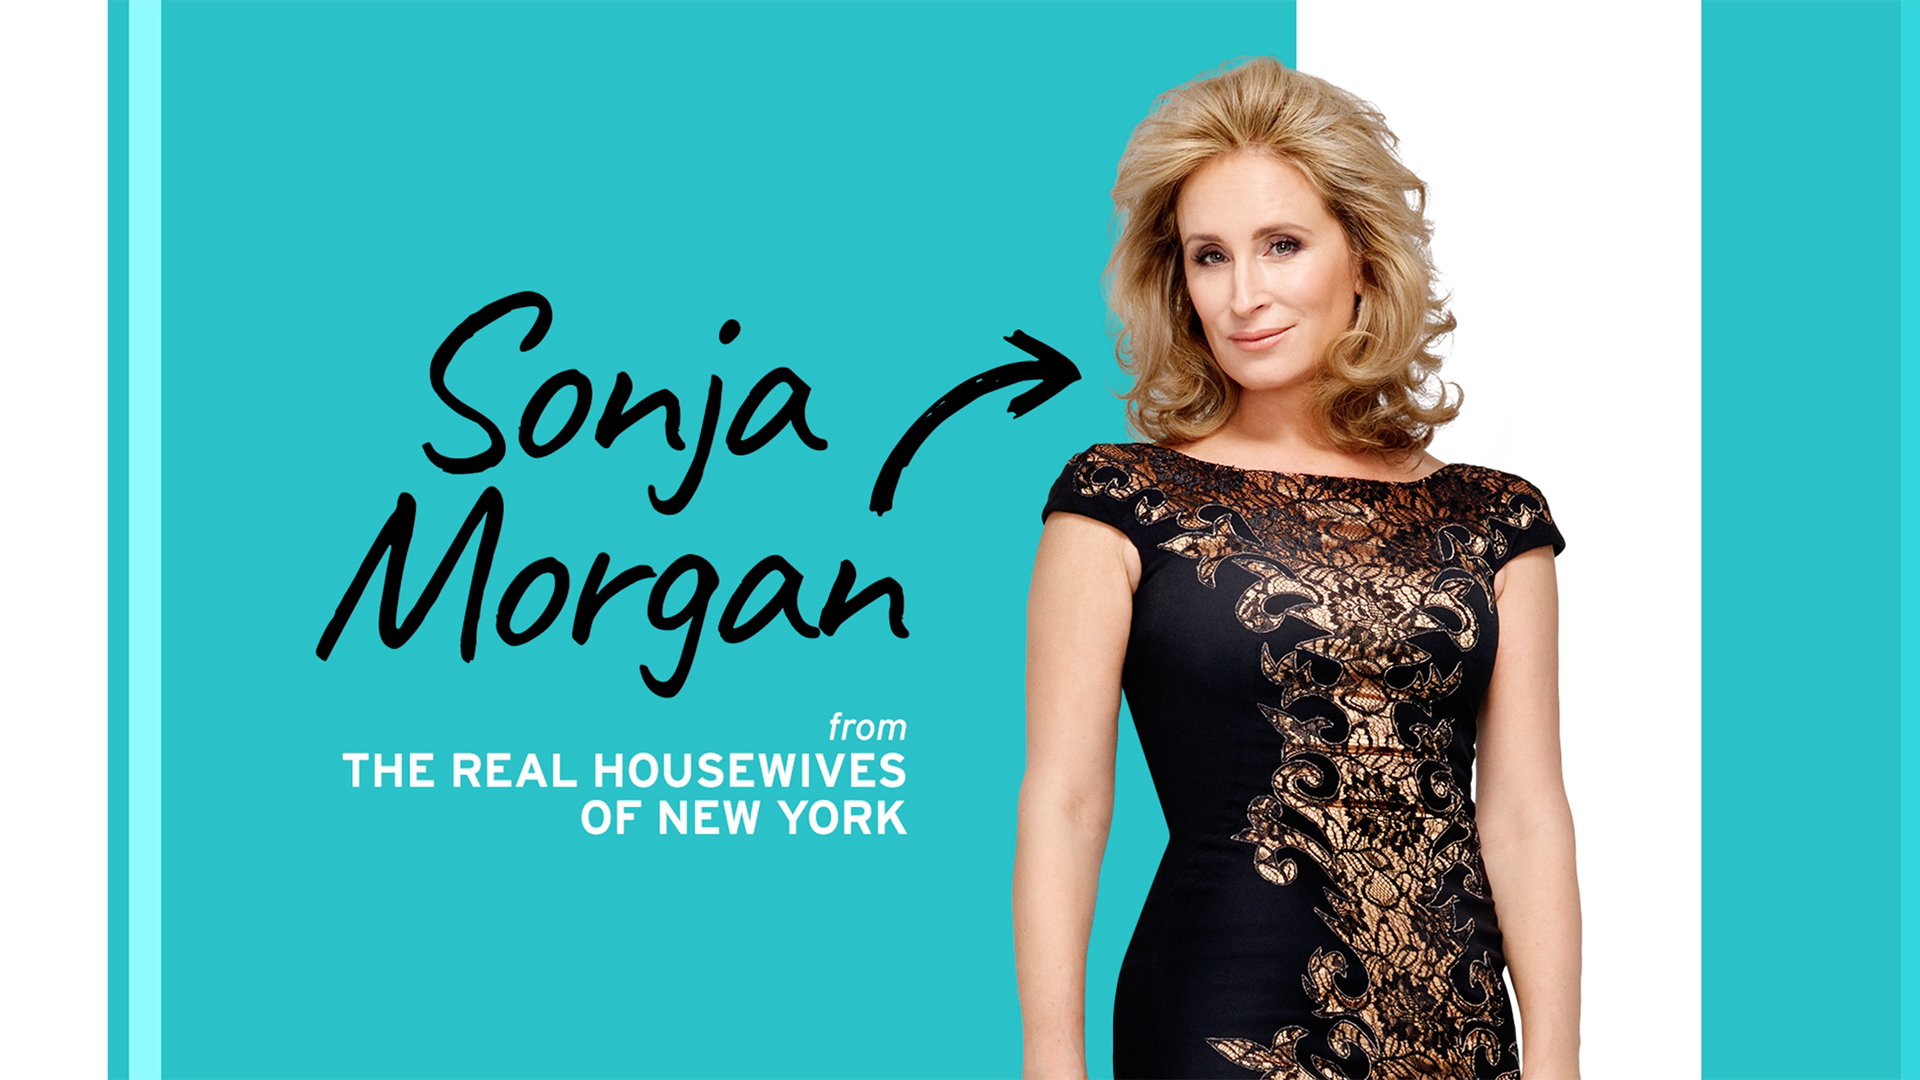 The Last Thing: Sonja Morgan